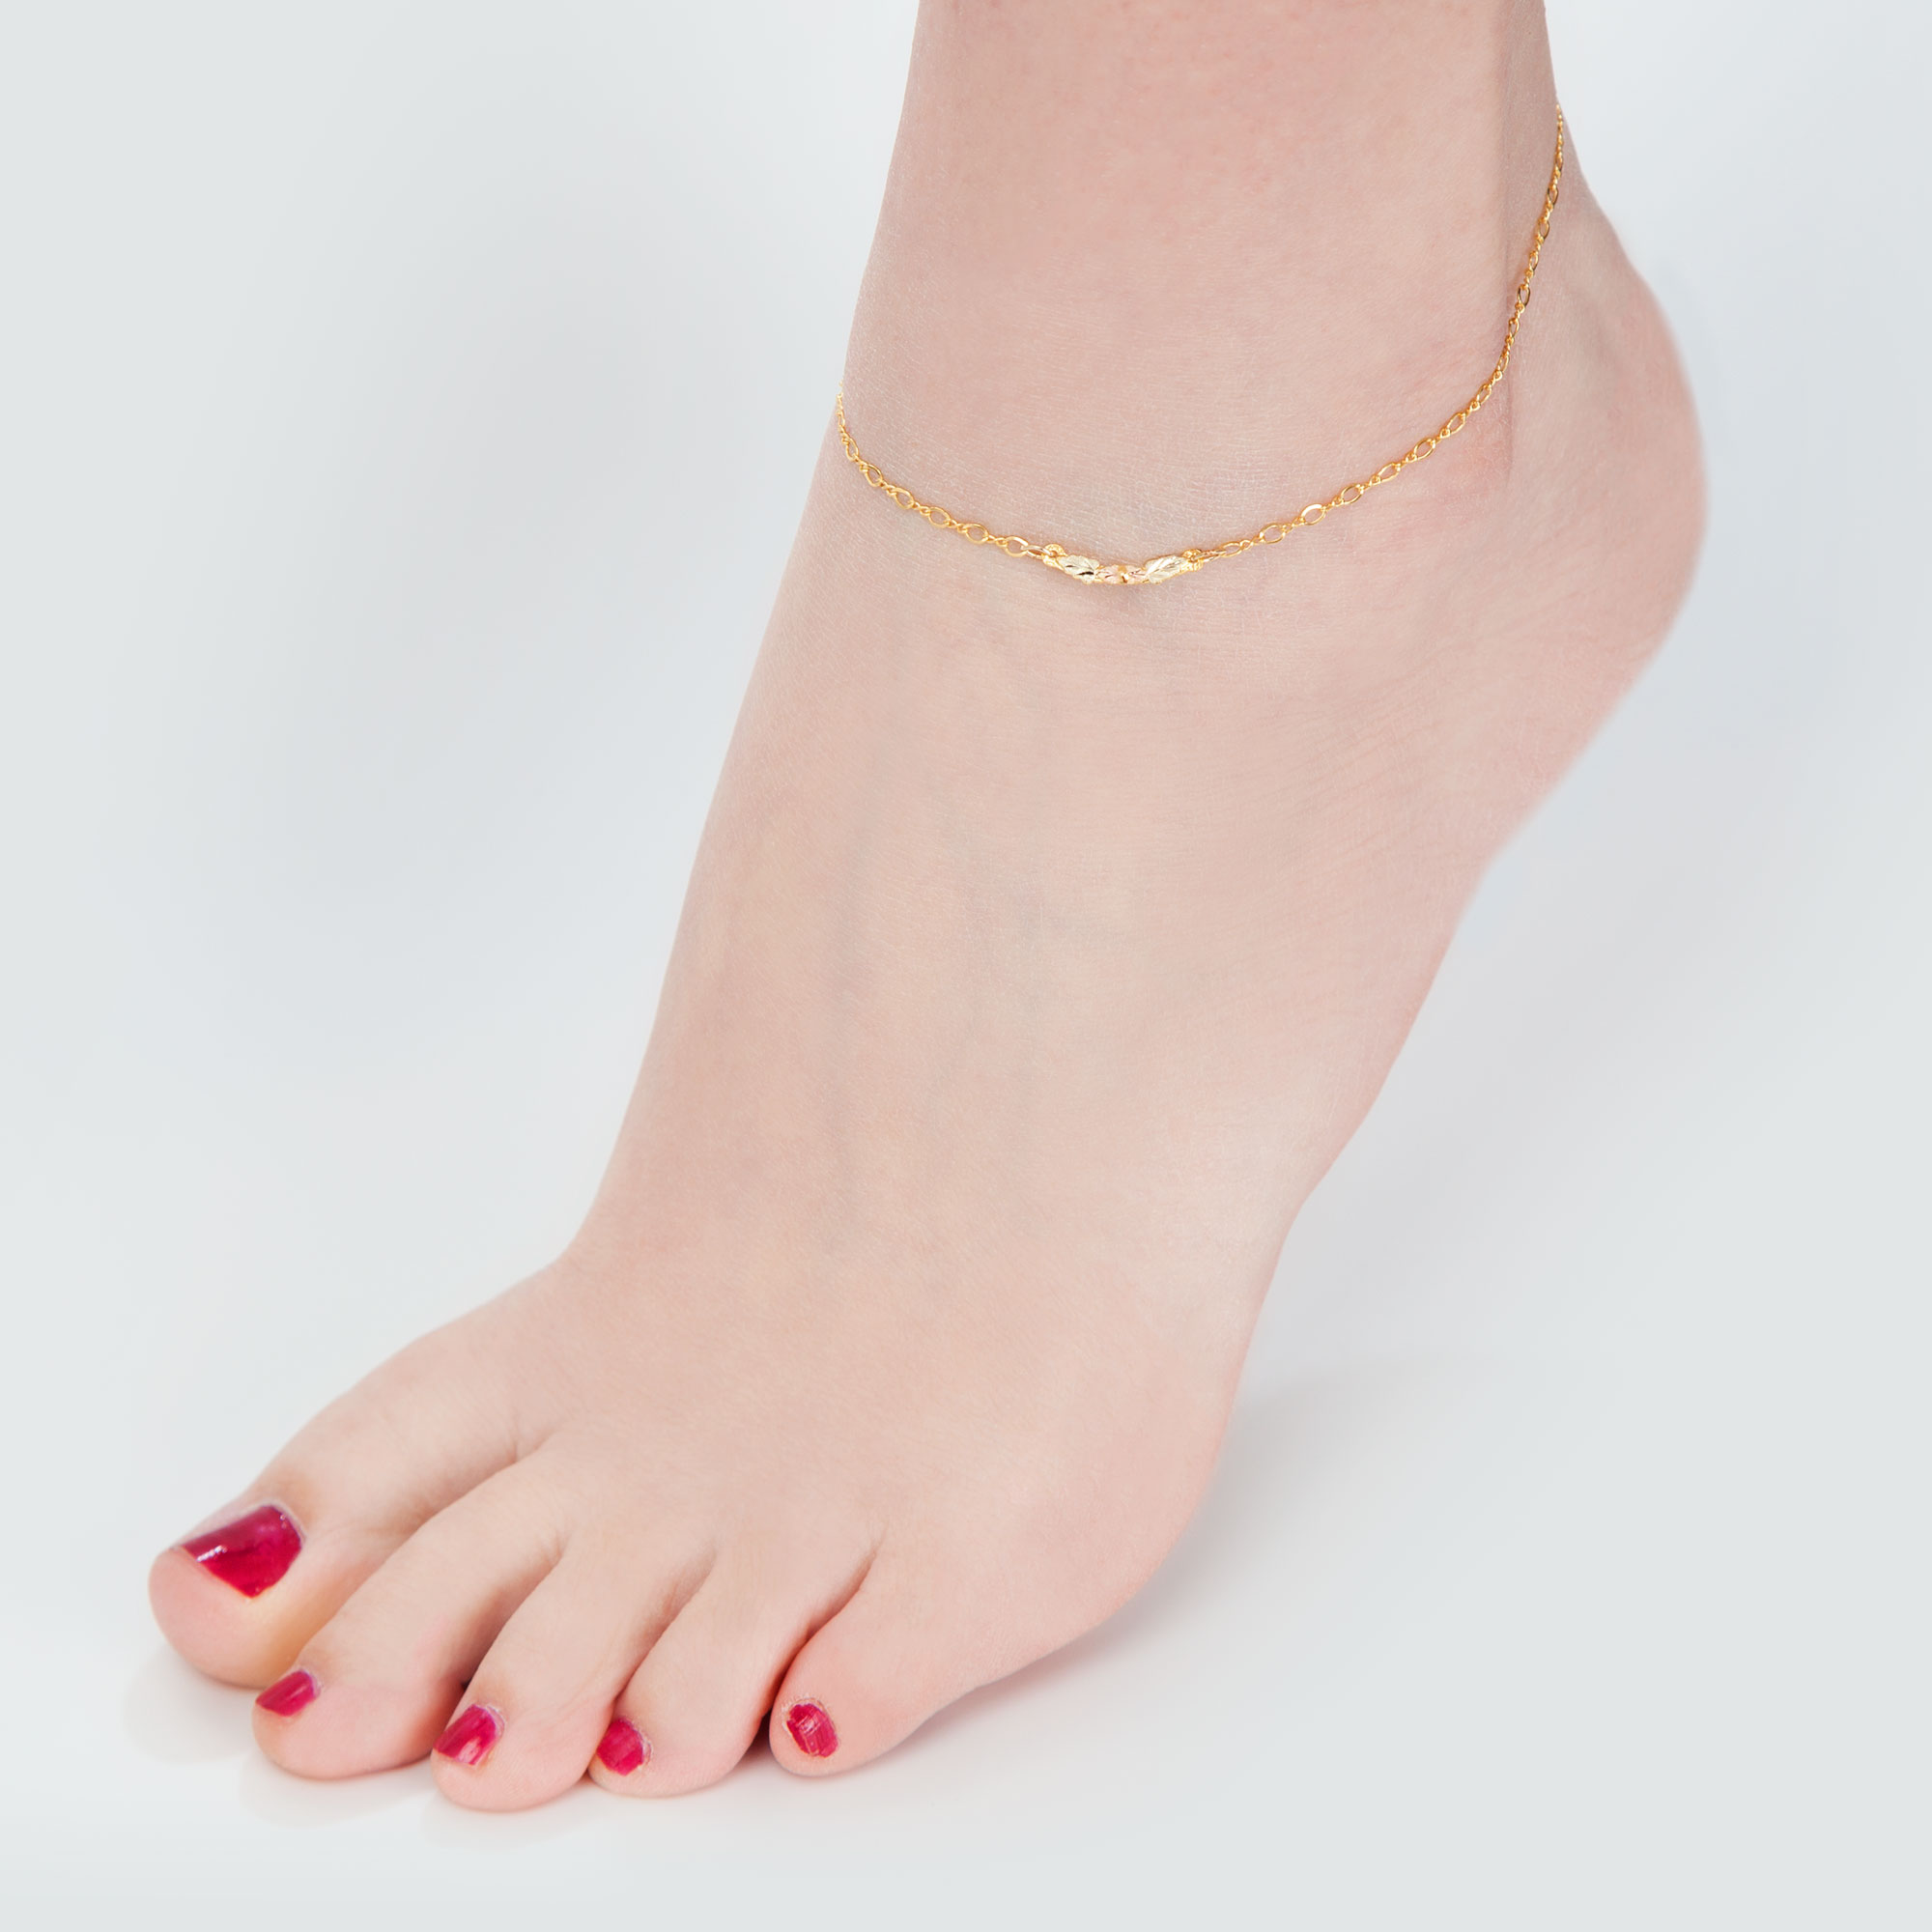 jewels gold heart ankle anklet karat by bracelet product chain elle